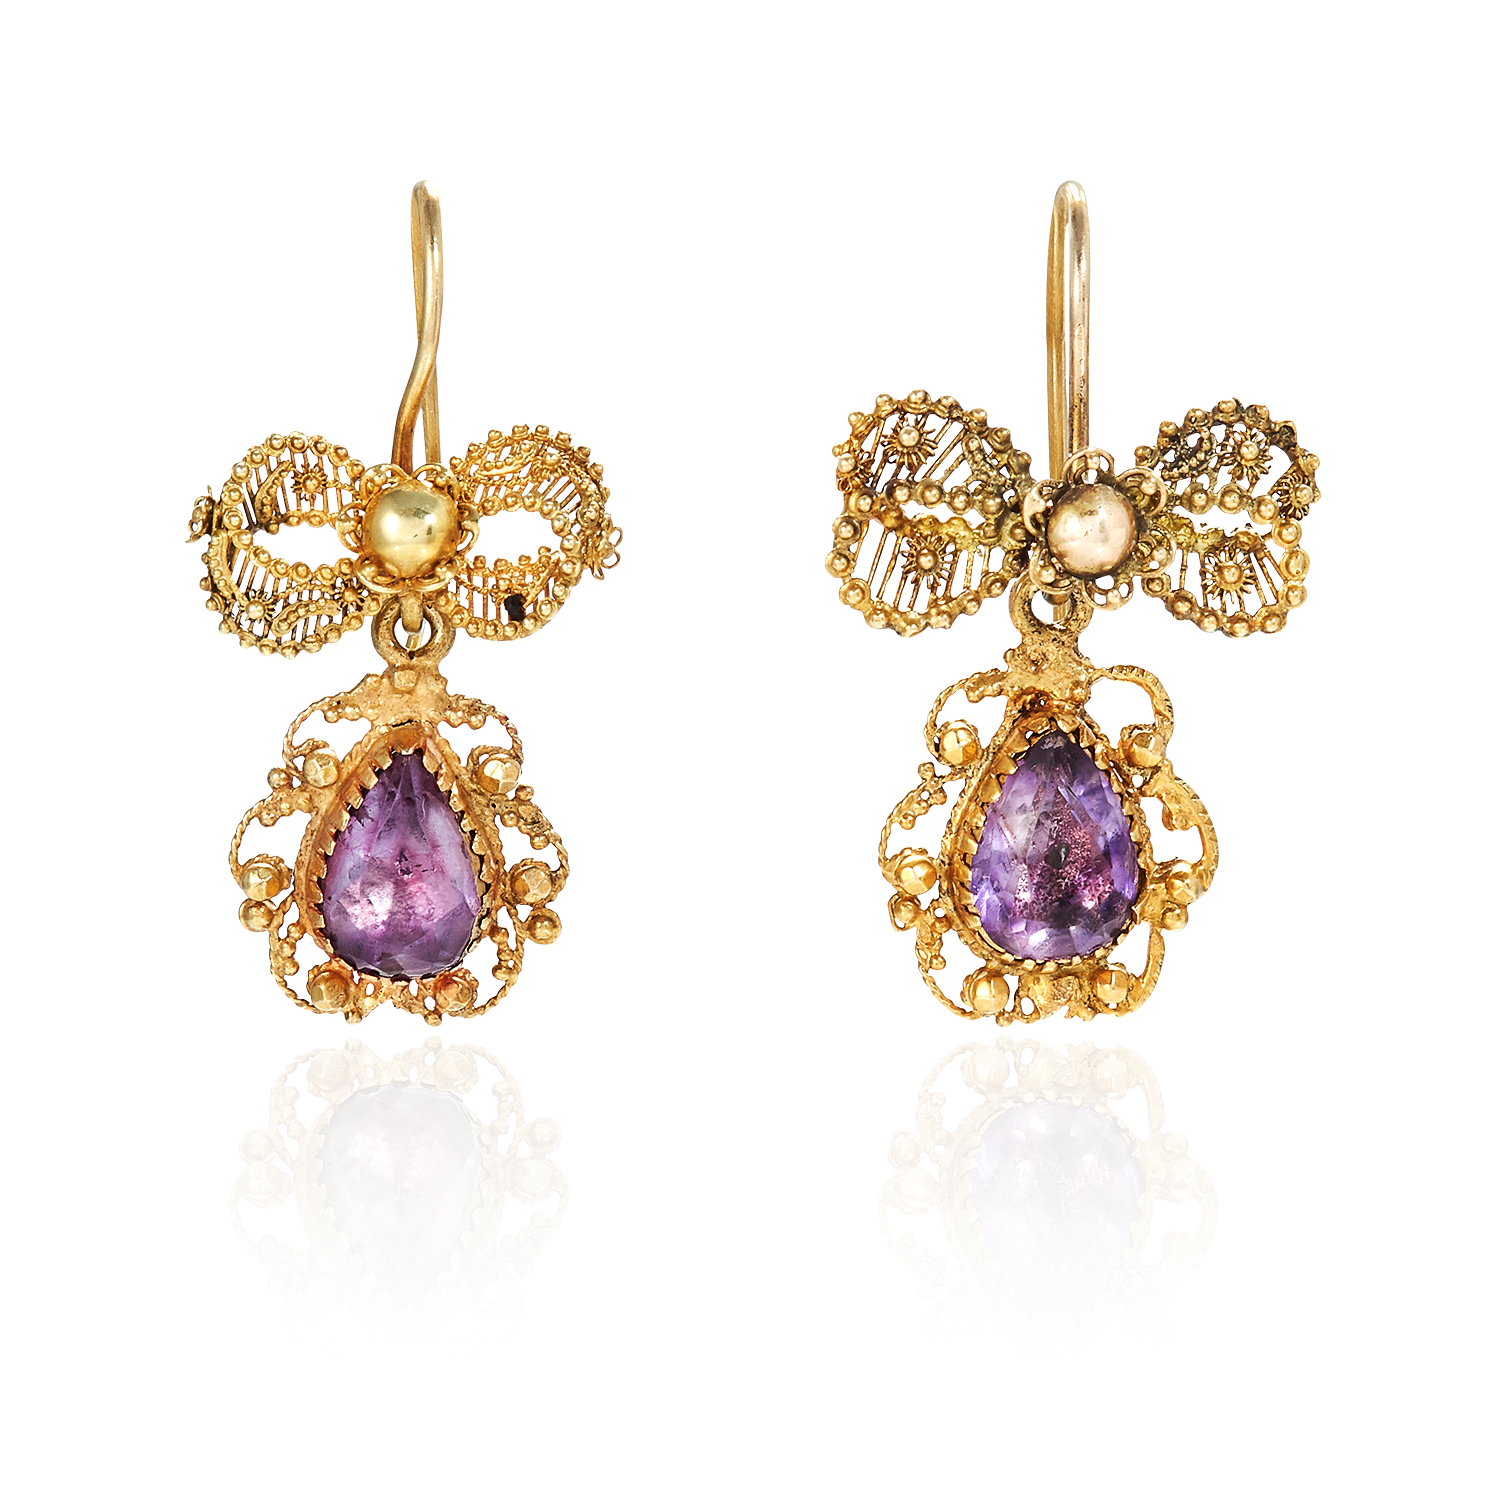 Los 36 - A PAIR OF ANTIQUE AMETHYST EARRINGS in high carat yellow gold, each set with a pear shaped